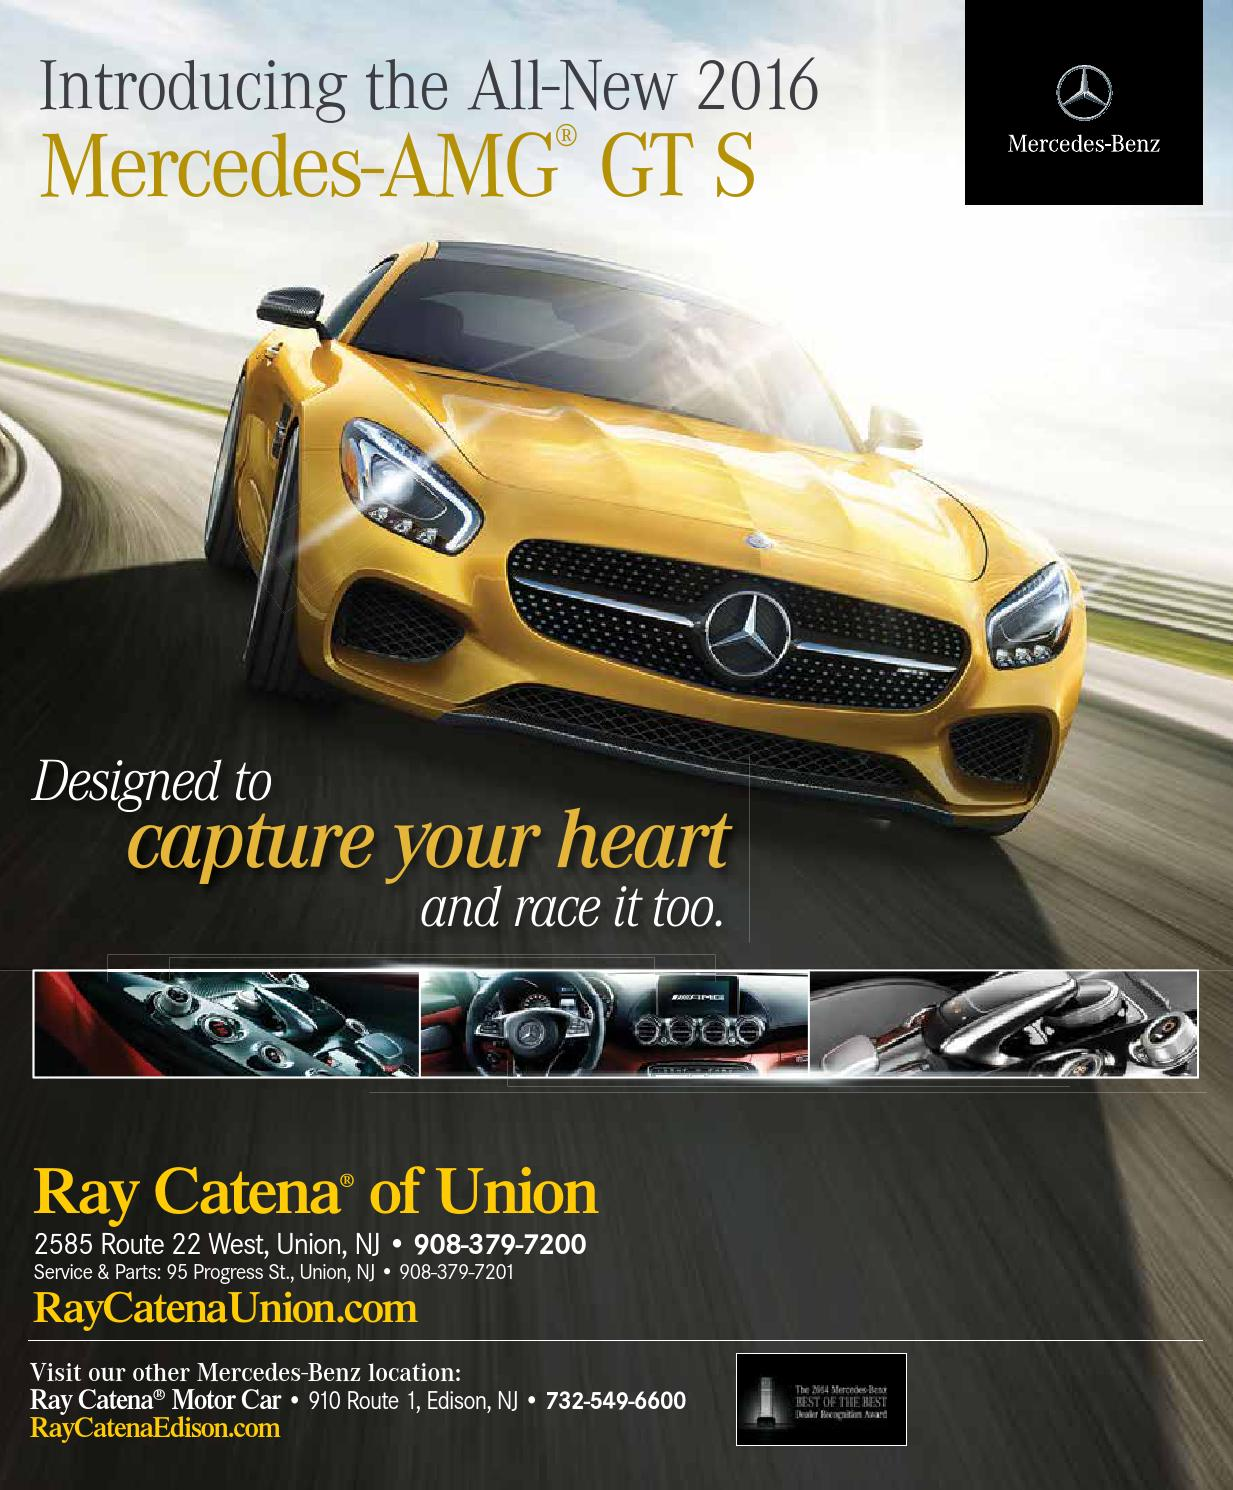 The art of fashion may june 2015 by mod media llc issuu for Ray catena motor car corp